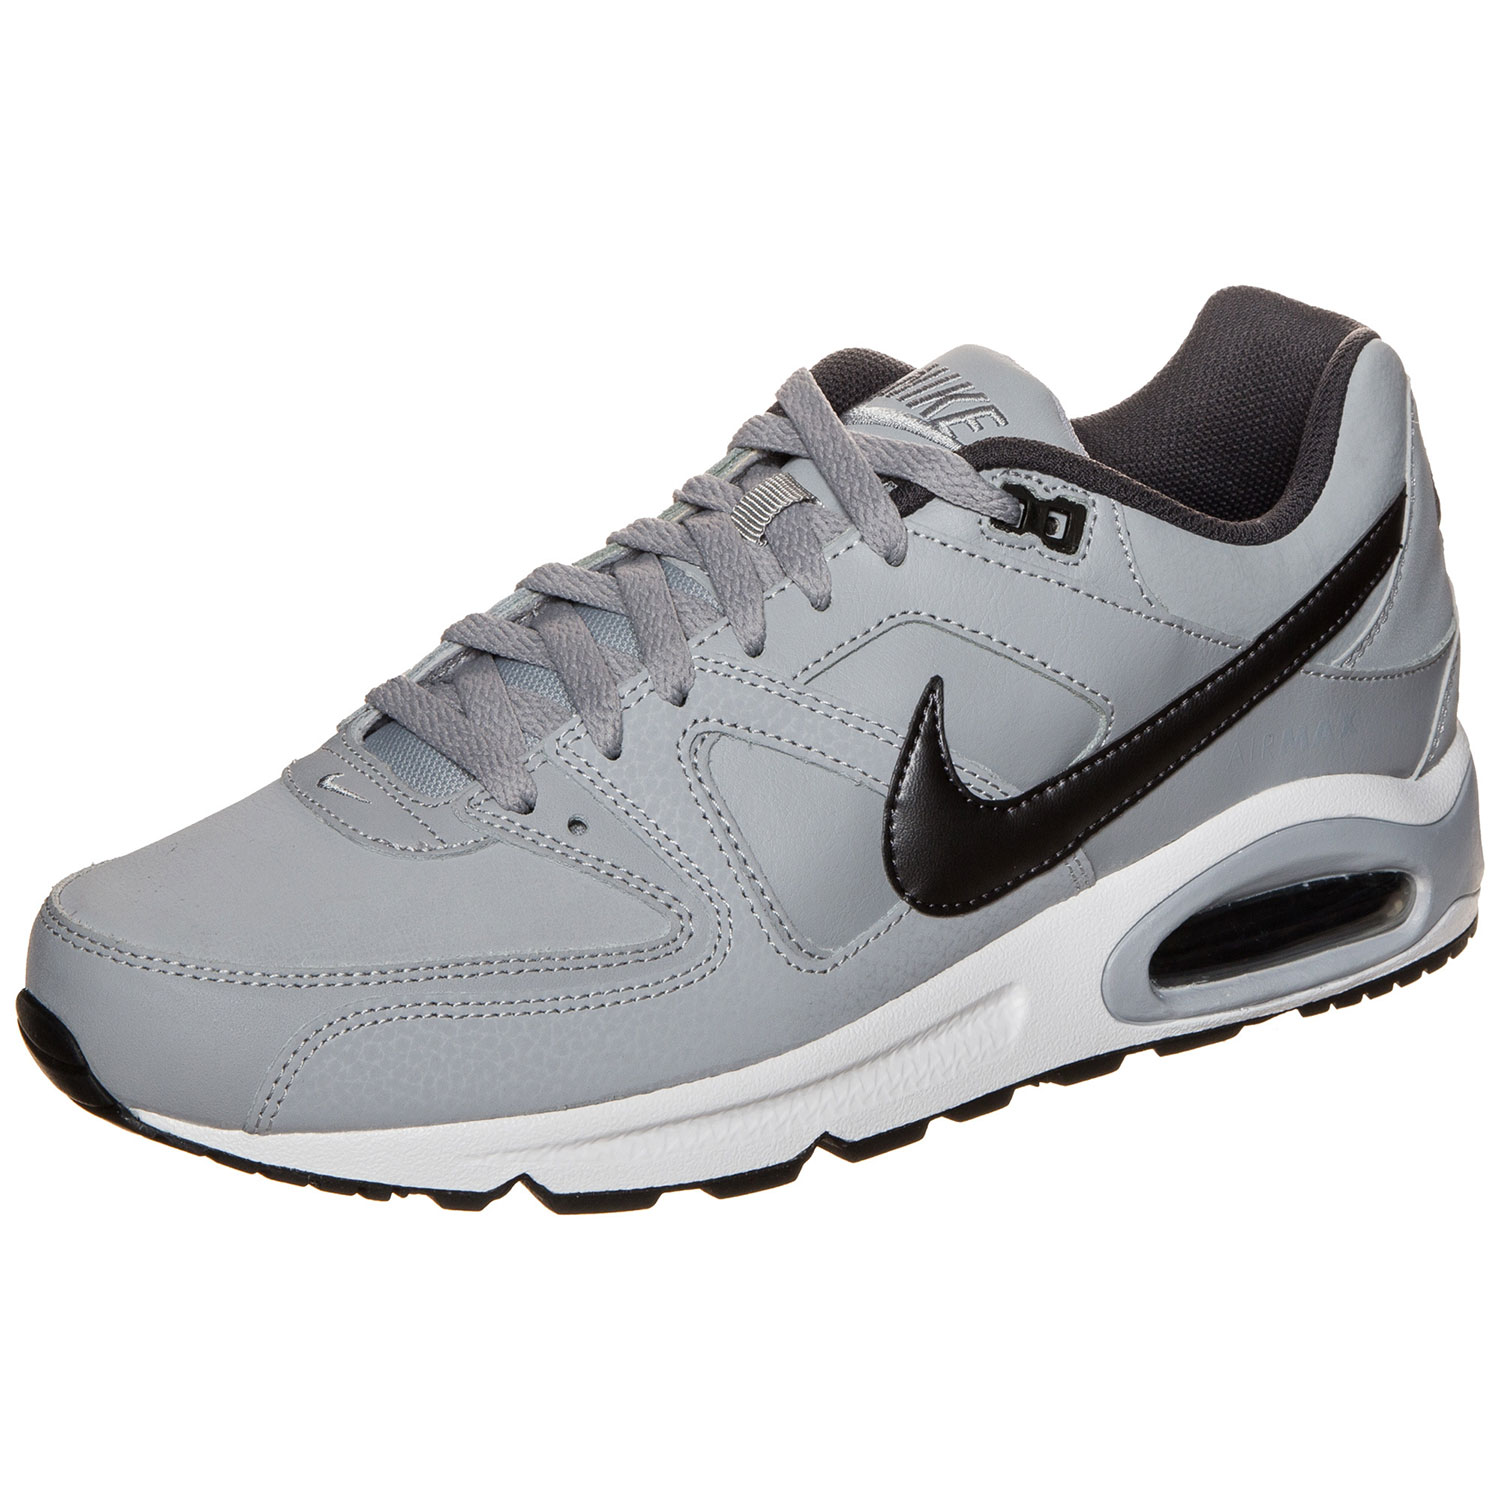 hot sale online c4051 53eb7 ... get nike air max command leather herren sneaker grau weiß 749760 012  bild 2 e4131 28880